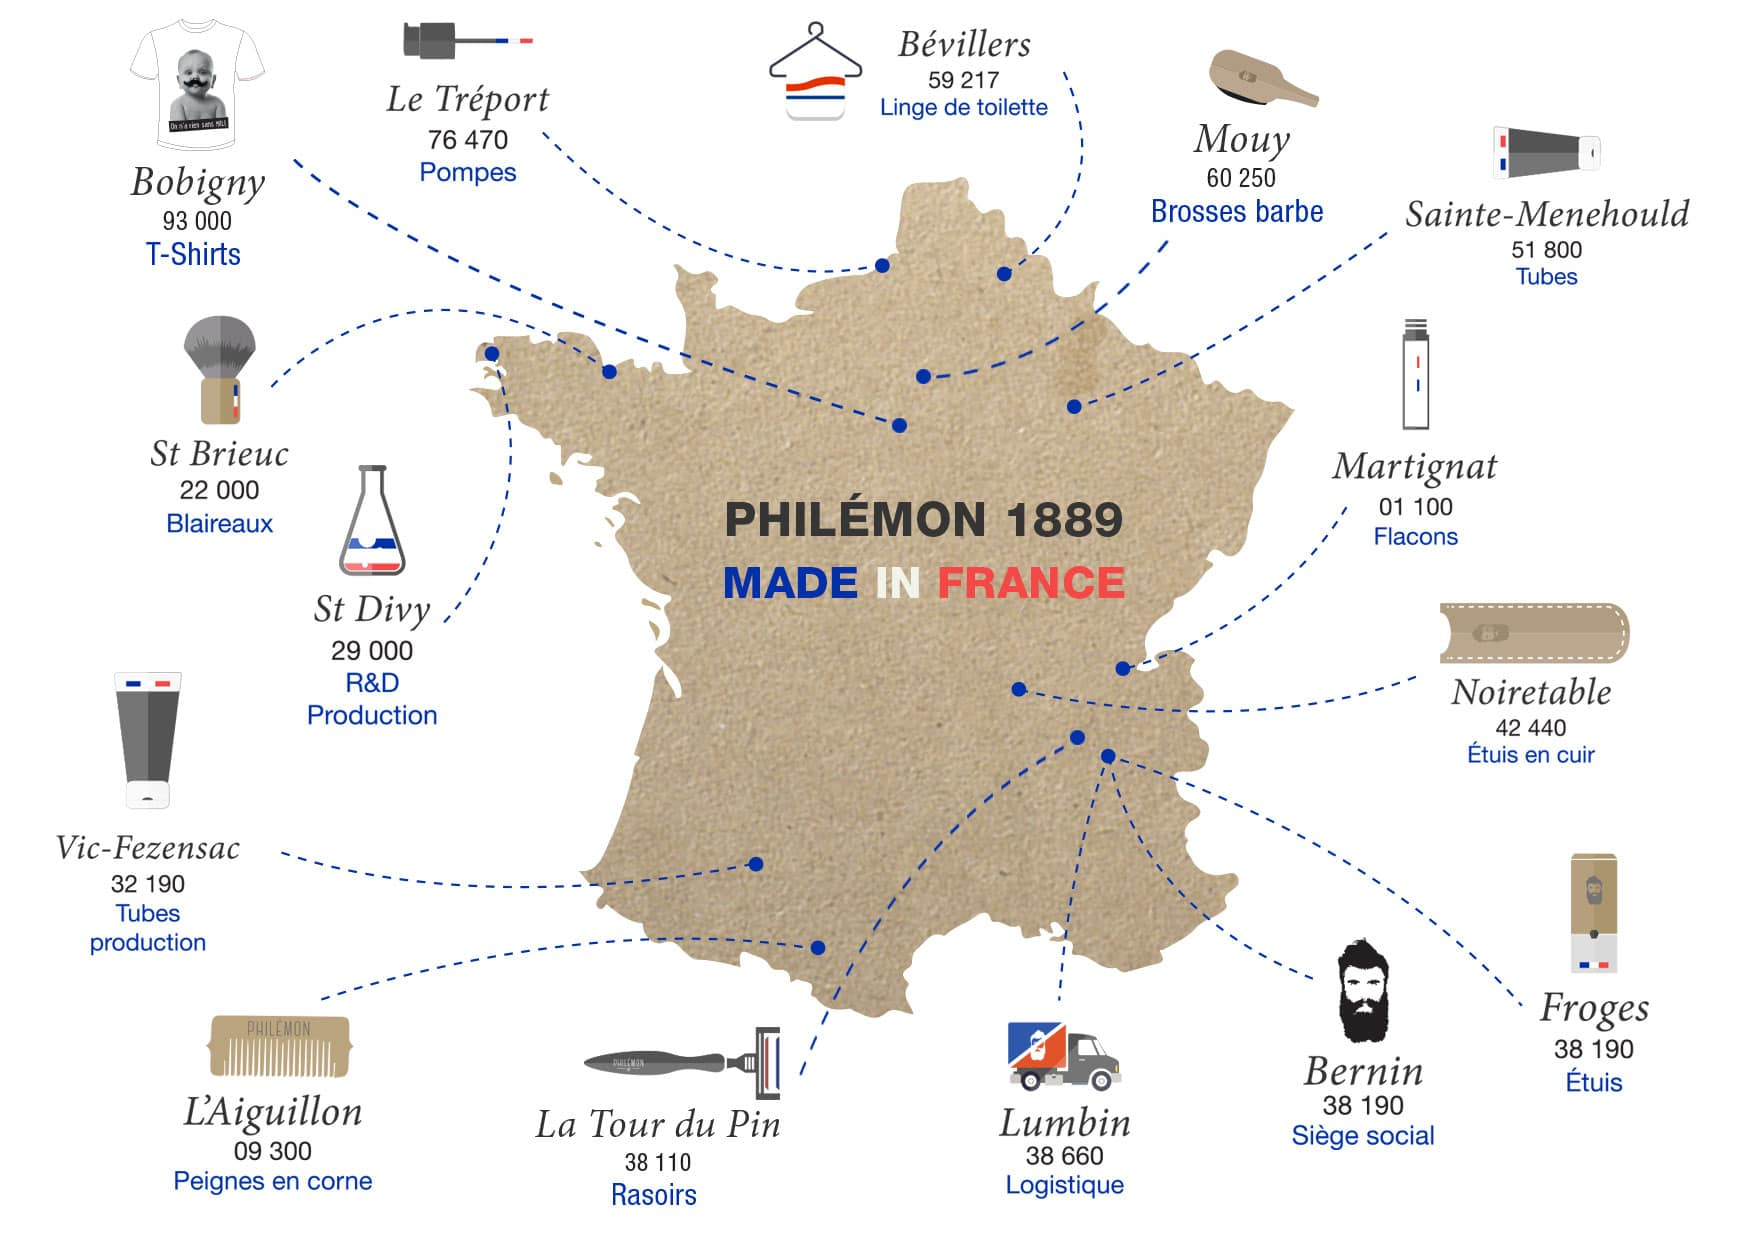 carte_prestataires_philemon1889_2017_Mad